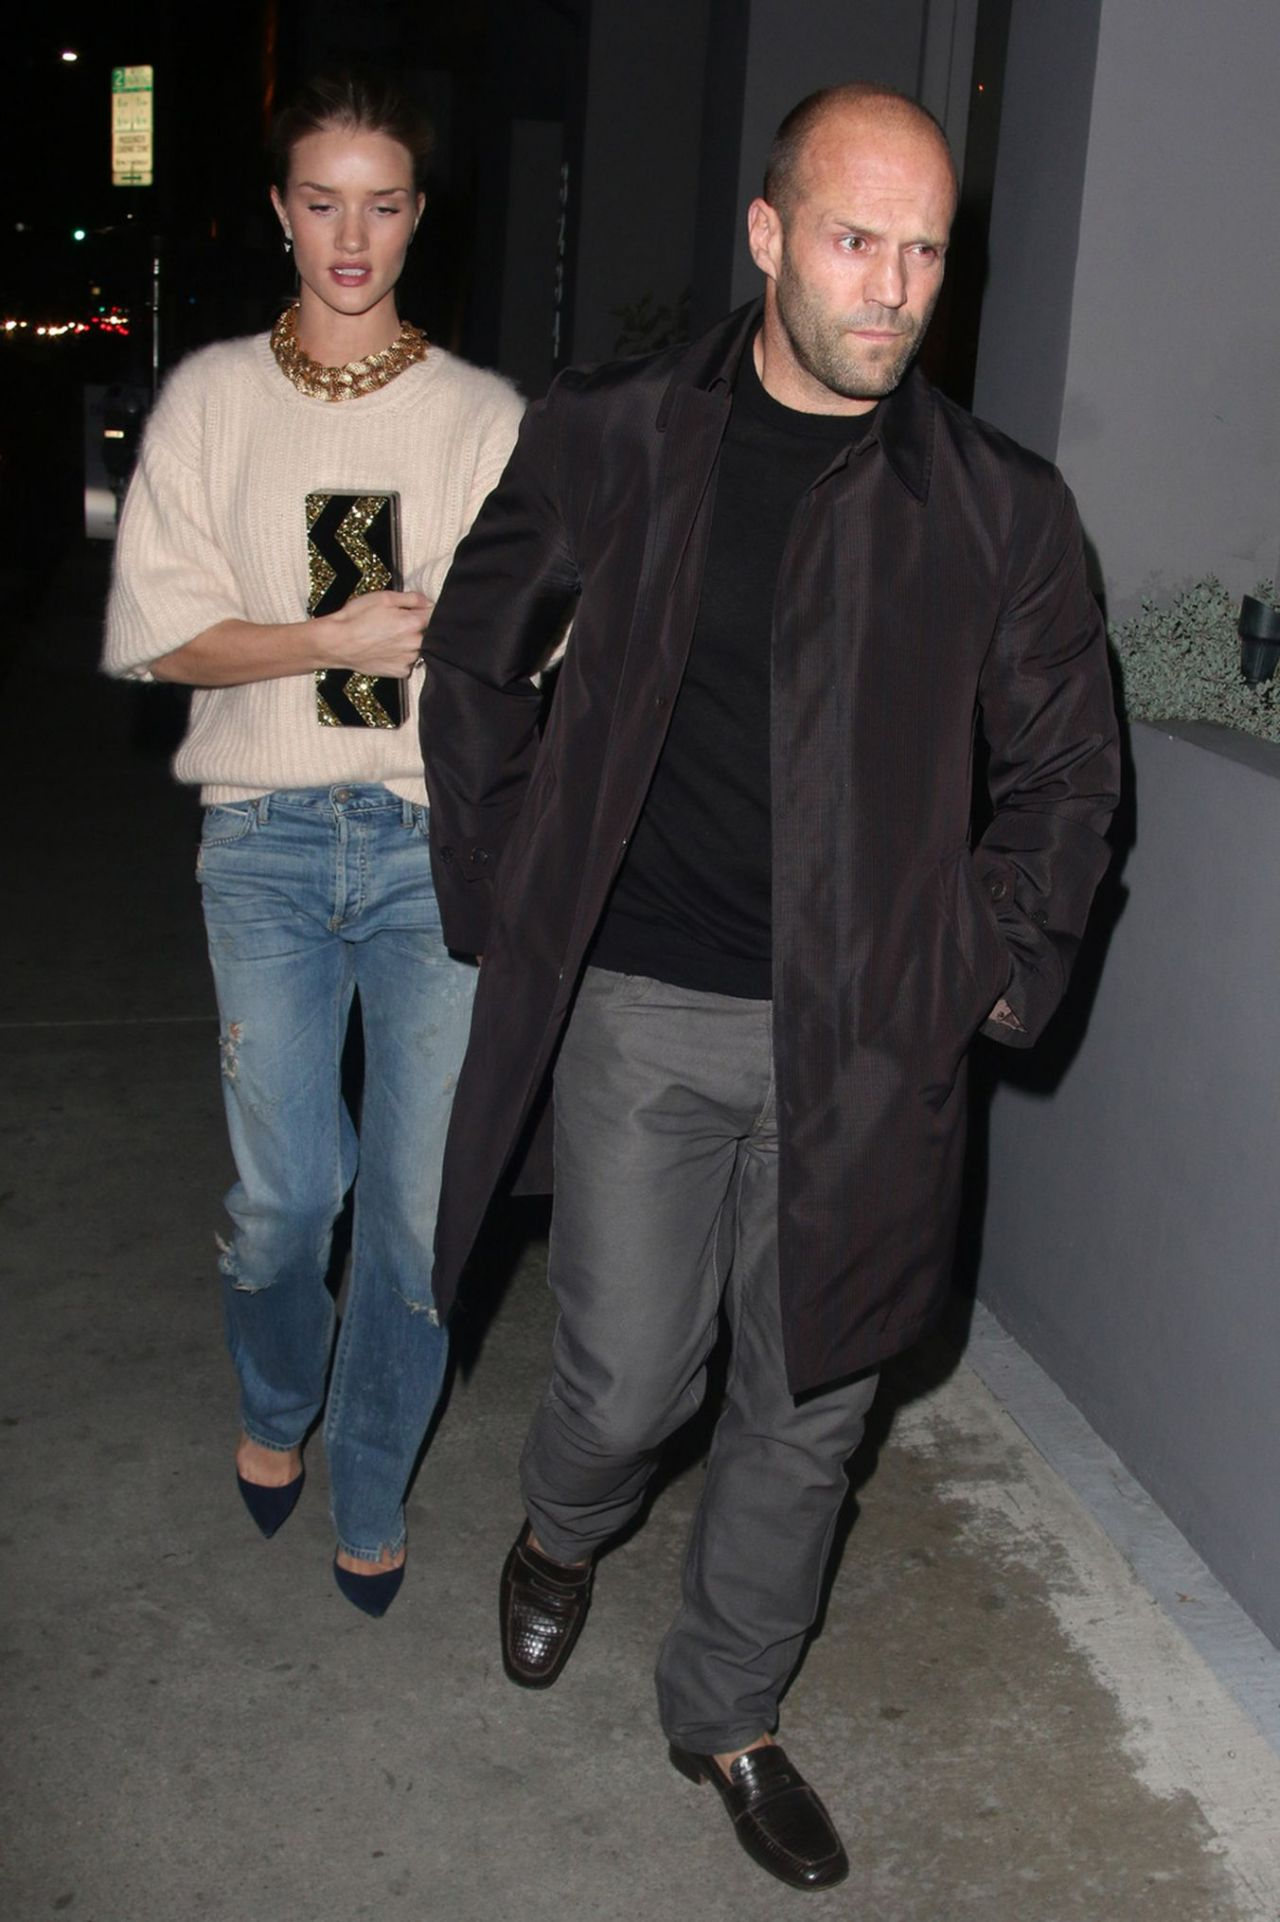 Rosie Huntington-Whiteley and Jason Statham at Crossroads Reataurant in West Hollywood